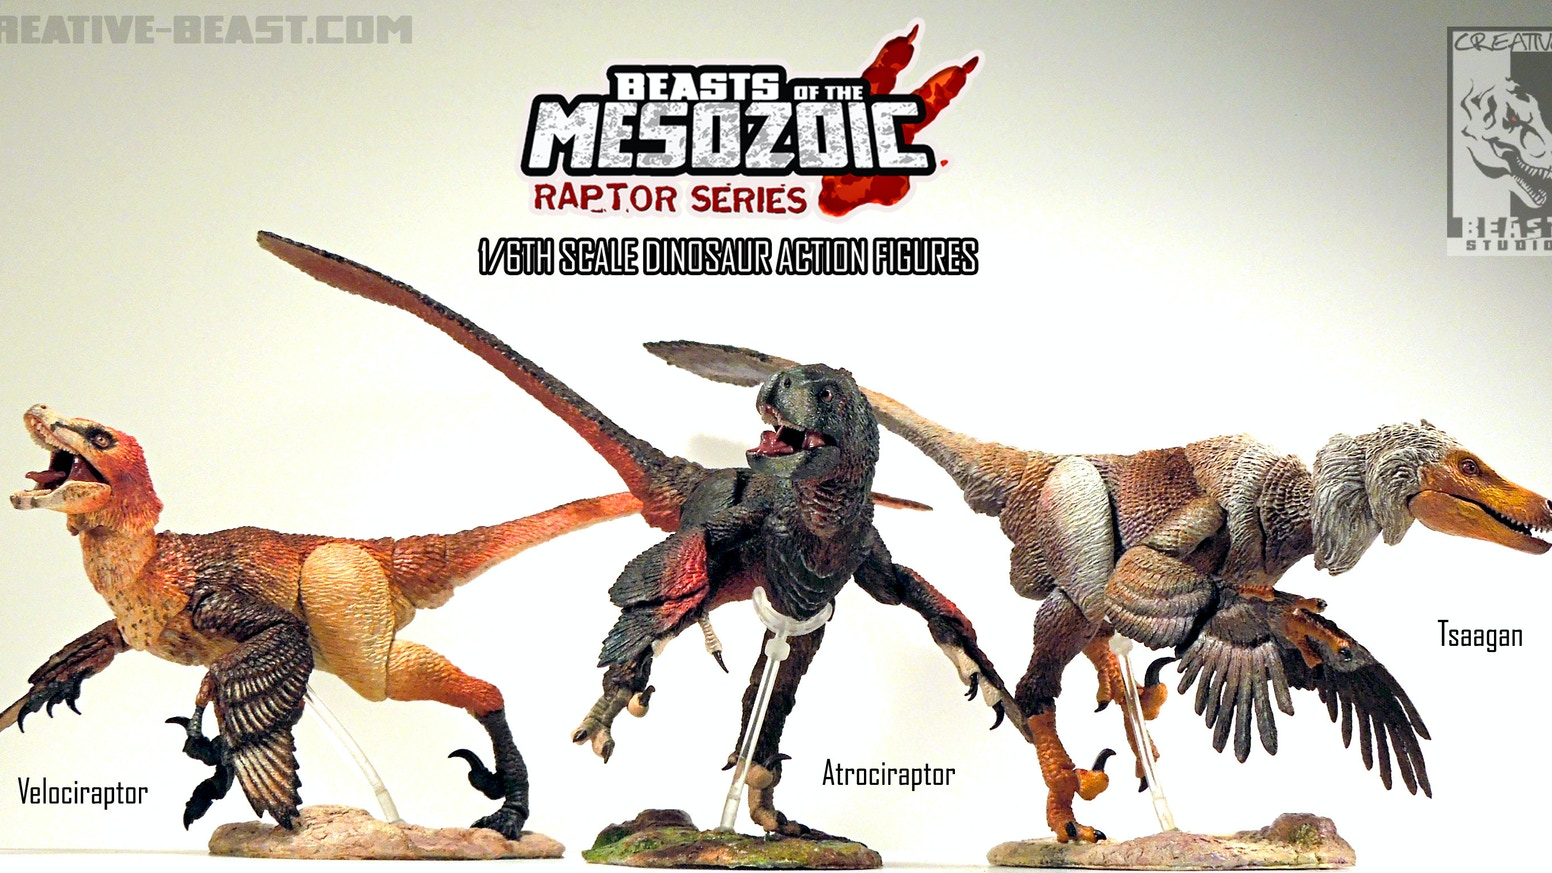 Beasts of the Mesozoic is a line of 1/6th scale scientifically accurate dinosaur action figures, with great detail and articulation.